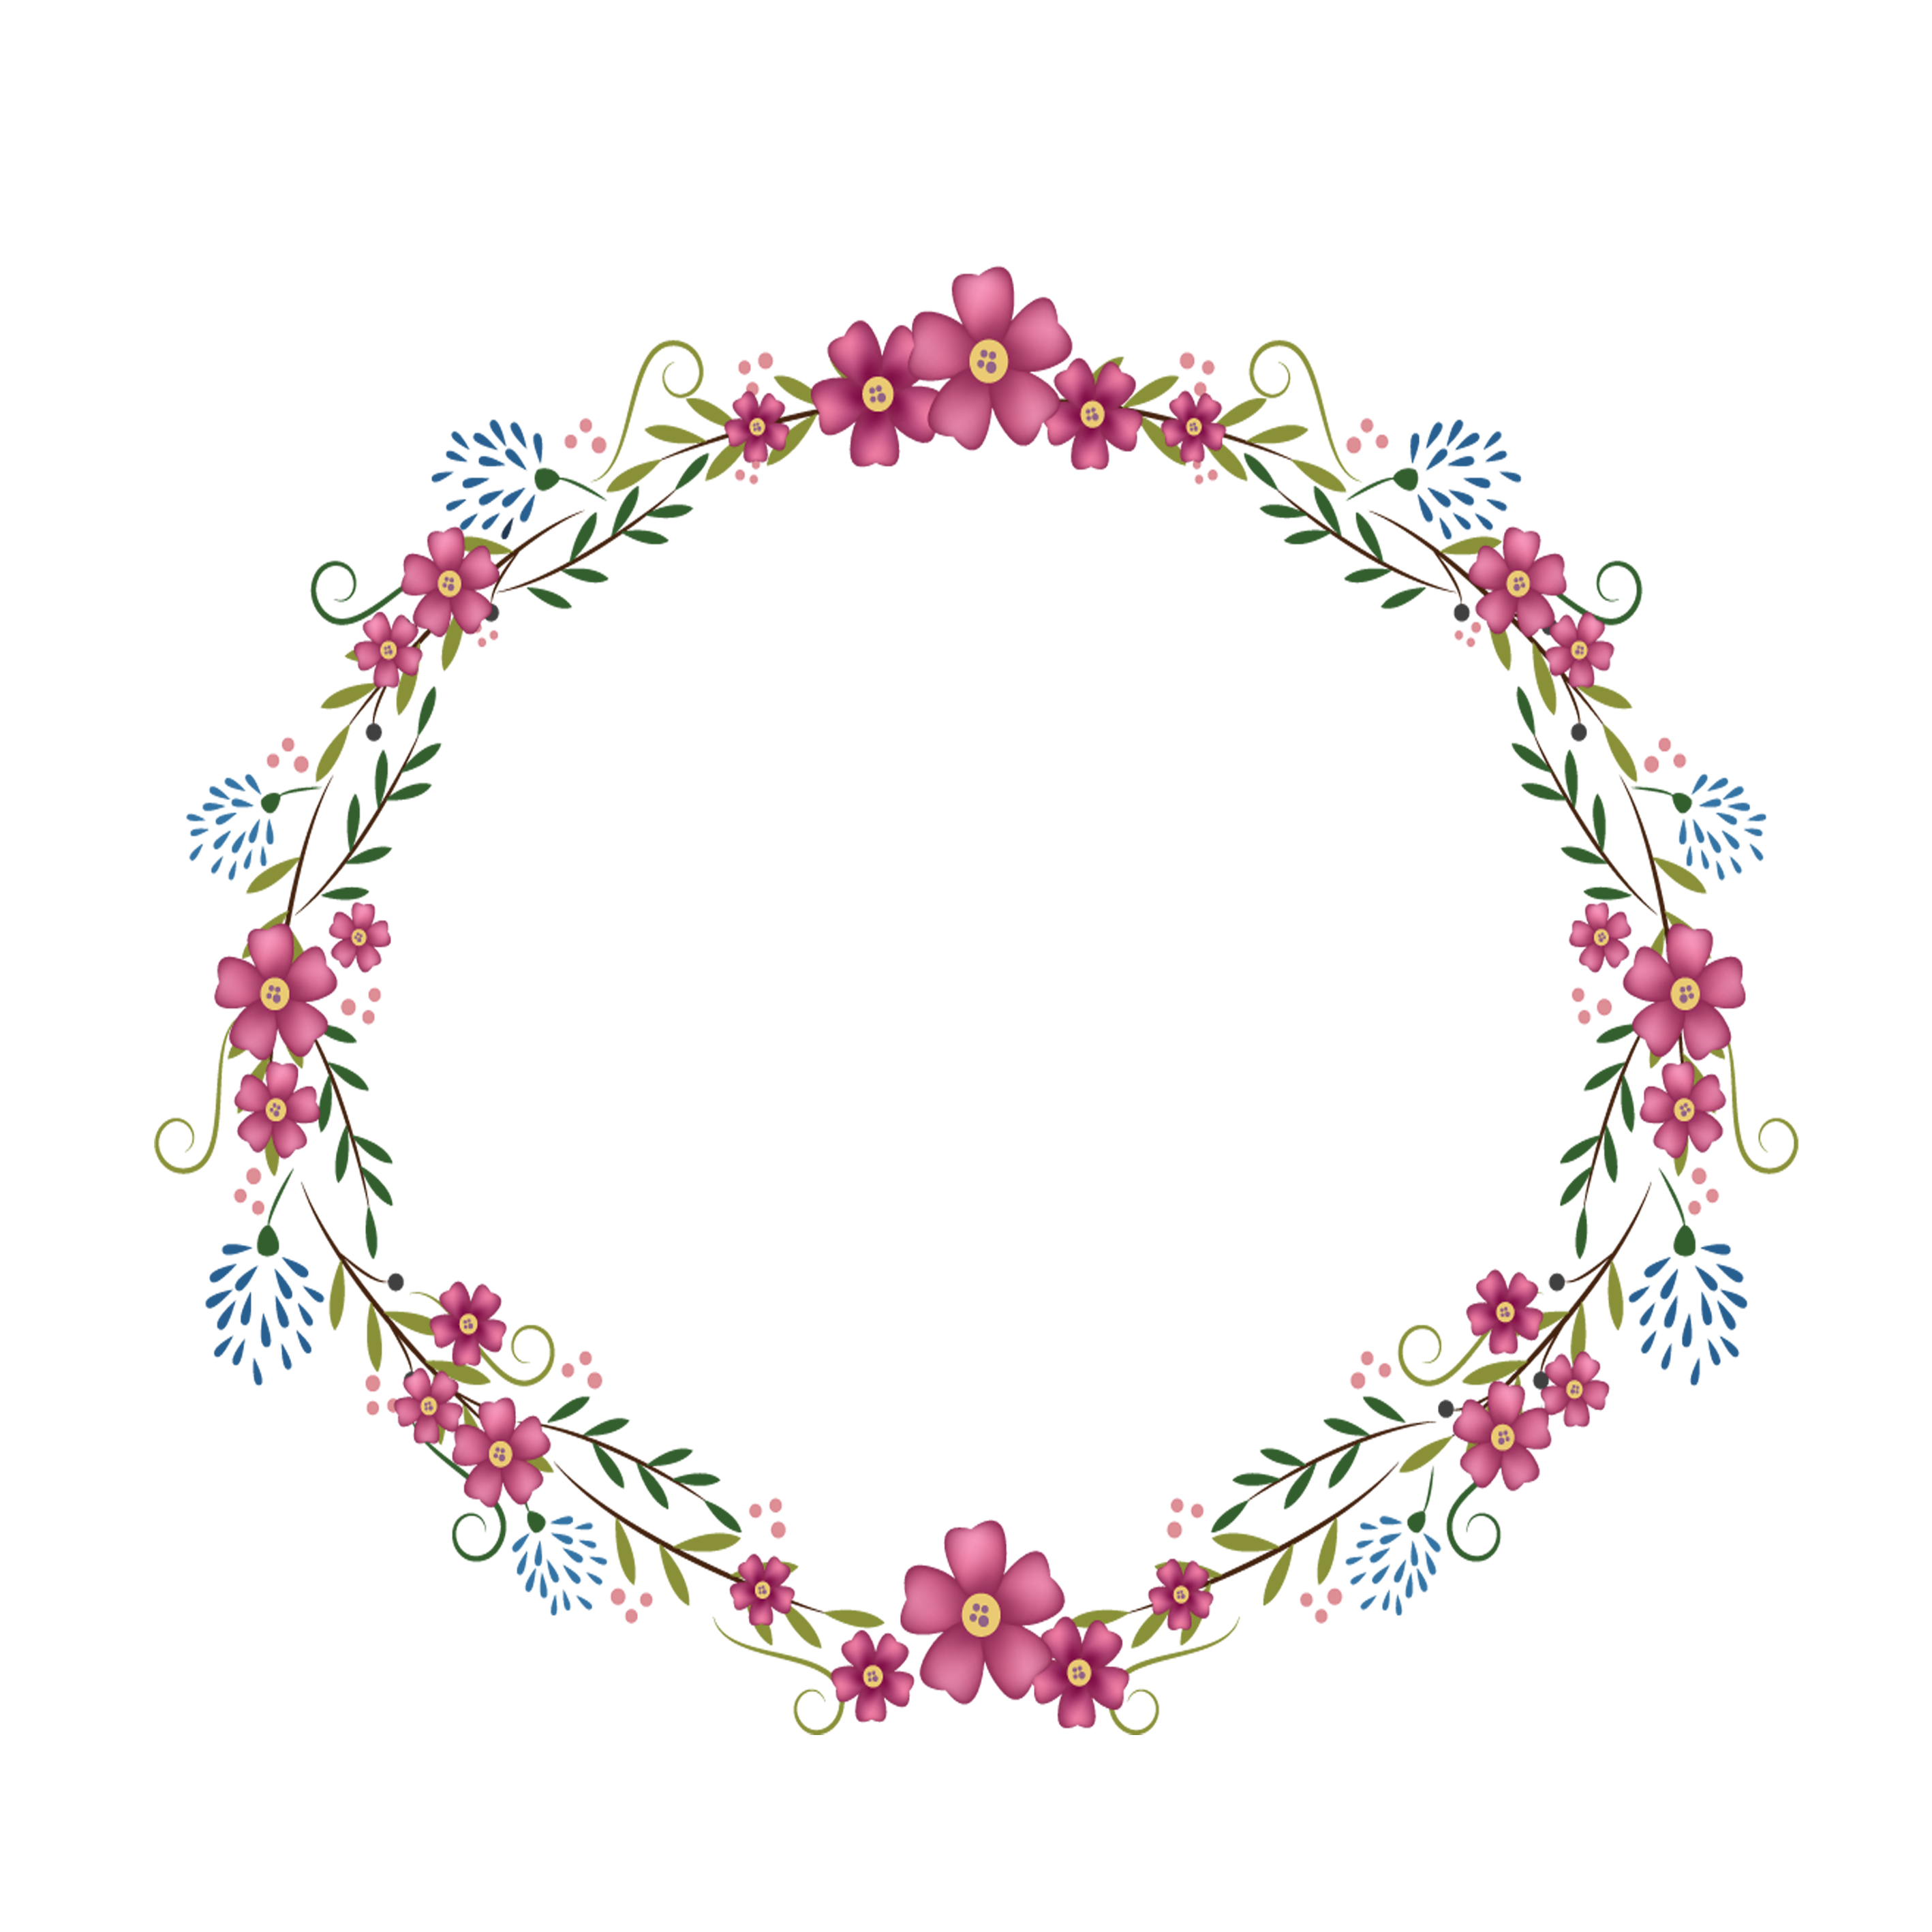 Pink round frame png. Flowers transprent free download